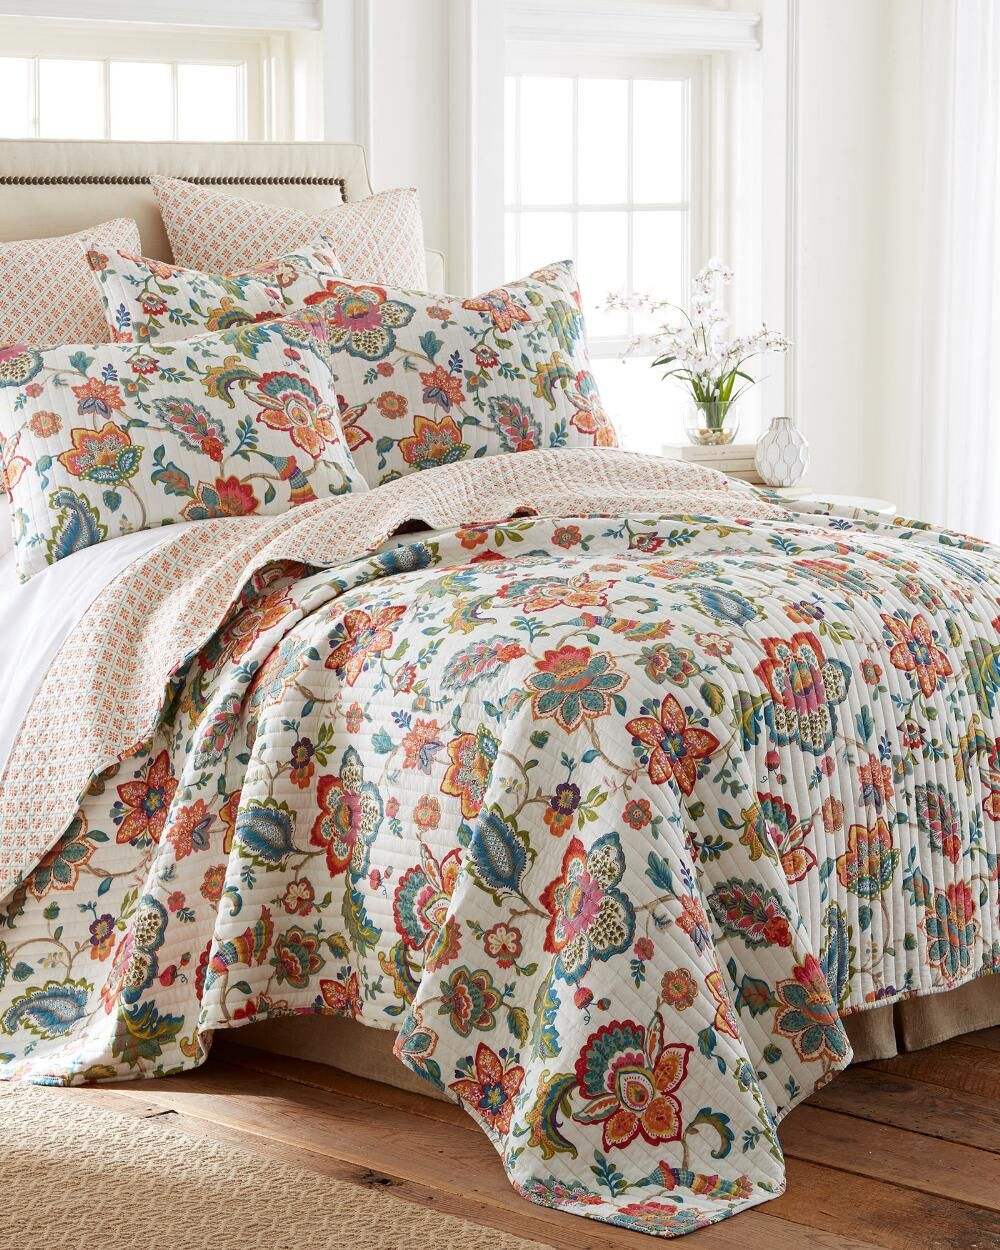 Risa Floral Luxury Quilt Collection Print Quilts Bedding Bed Bath Stein Mart Quilt Sets Bedding Quilt Sets Luxury Quilts